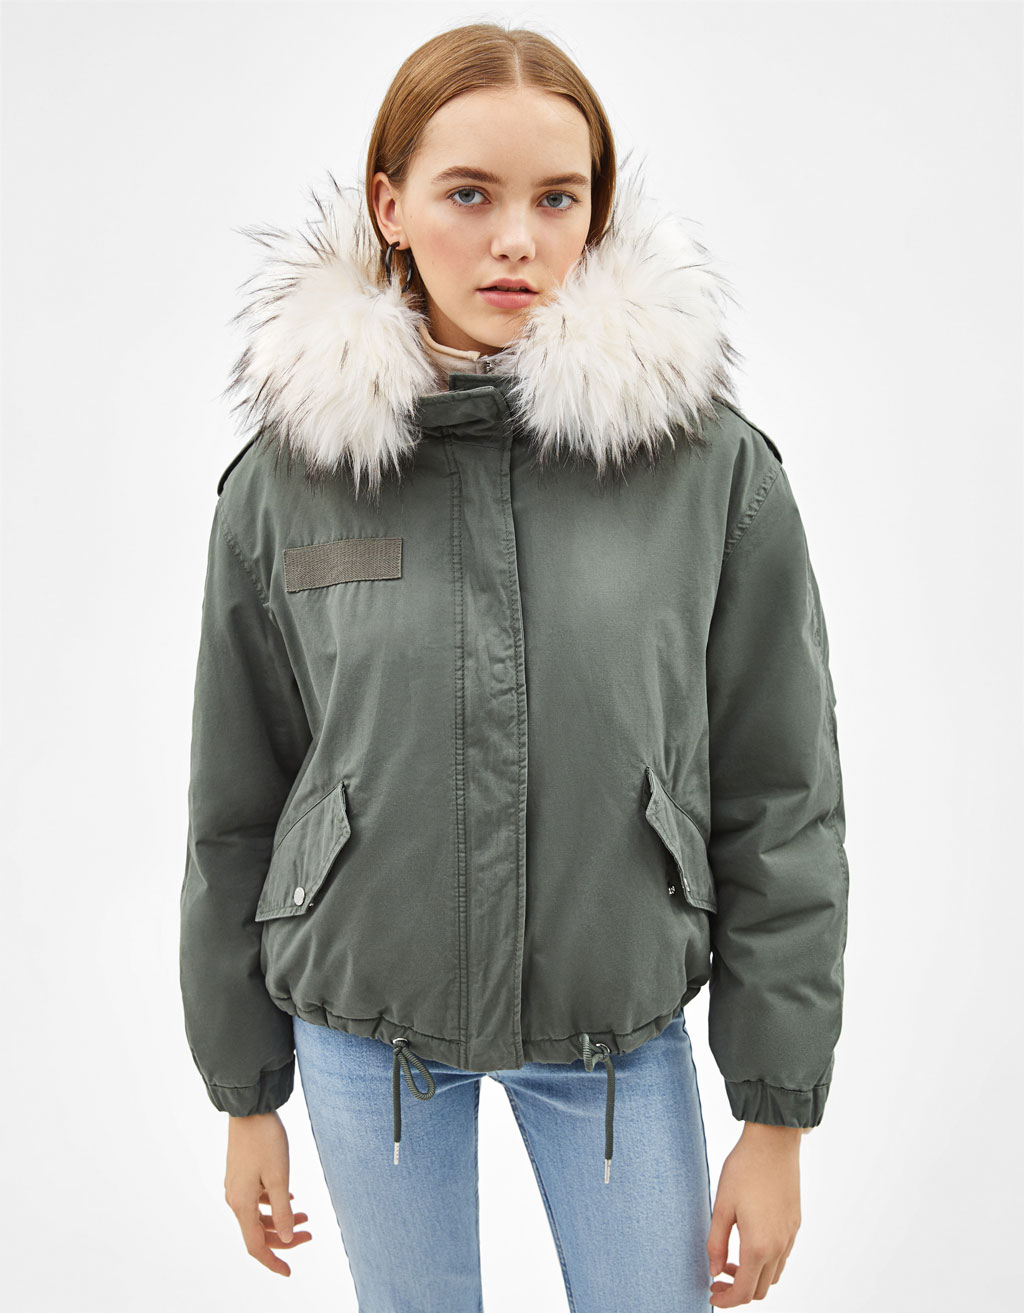 Short faux fur-lined jacket